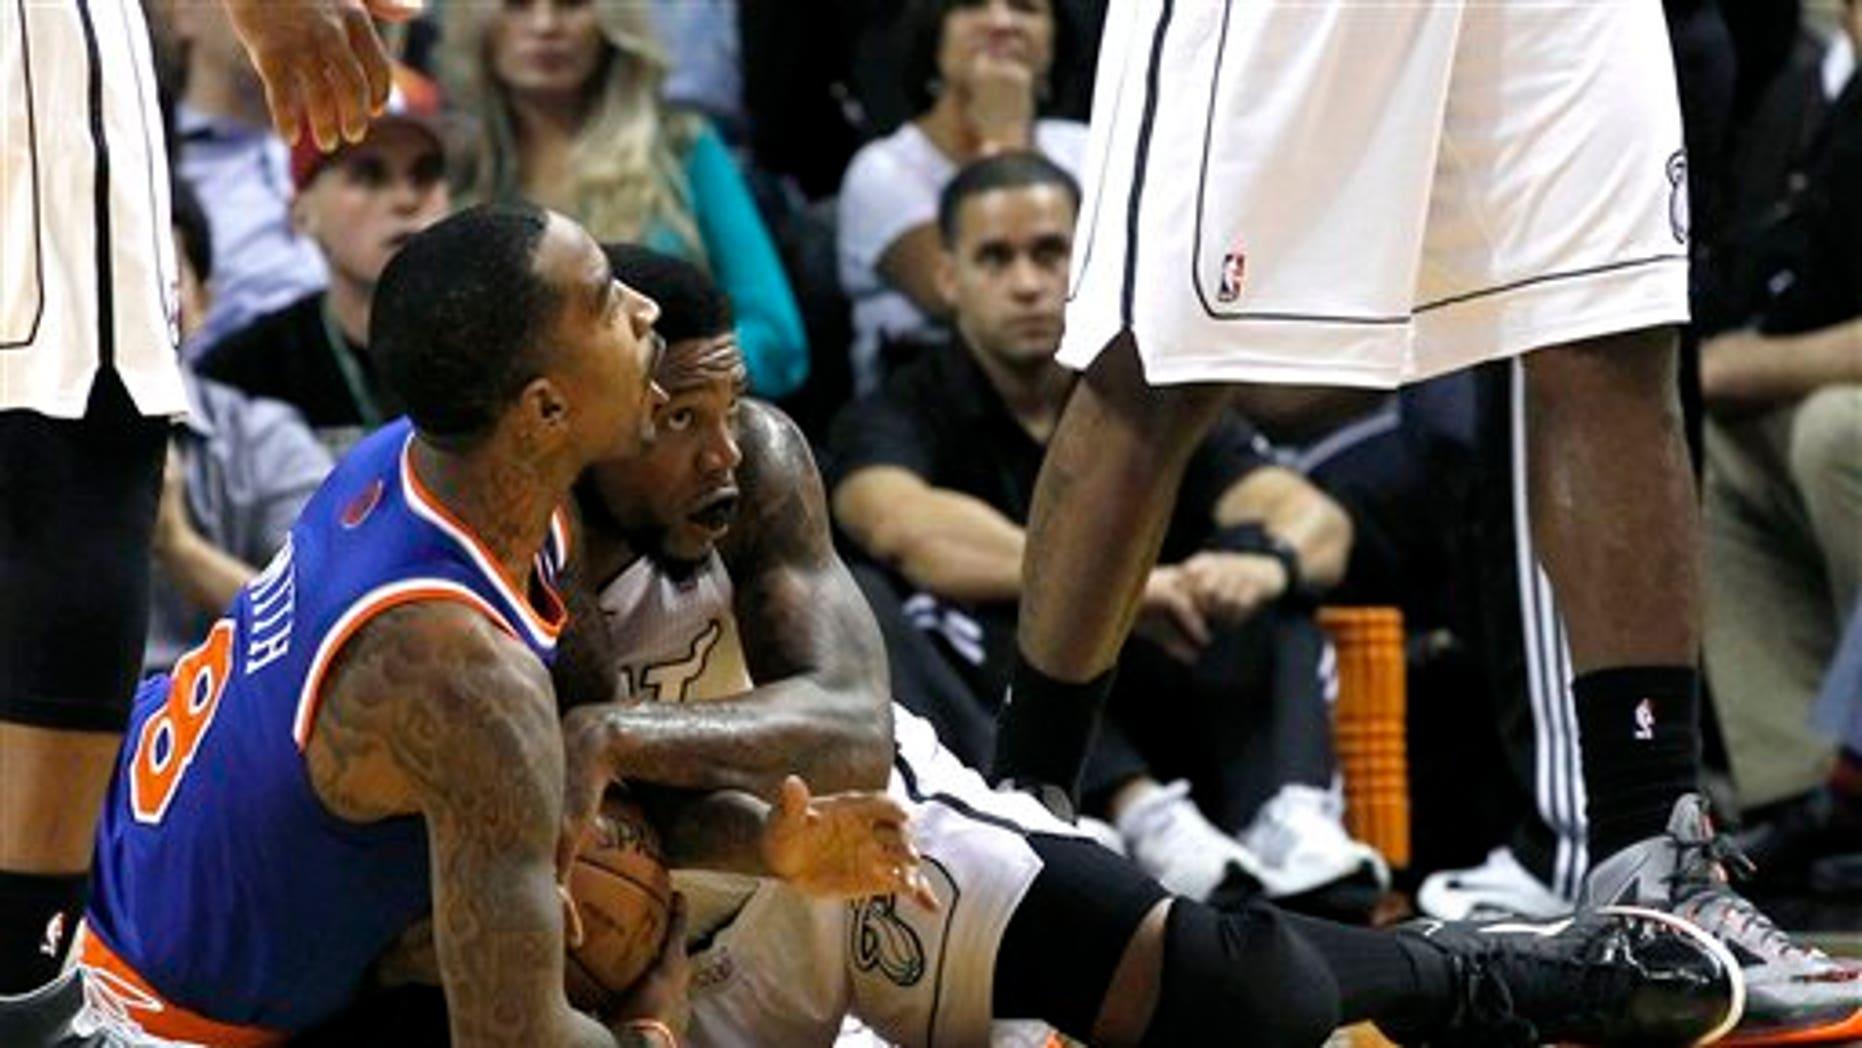 New York Knicks' J.R. Smith (8) battles Miami Heat's Udonis Haslem (40) for control of the loose ball during the first half of an NBA basketball game, Thursday, Dec, 6, 2012, in Miami.